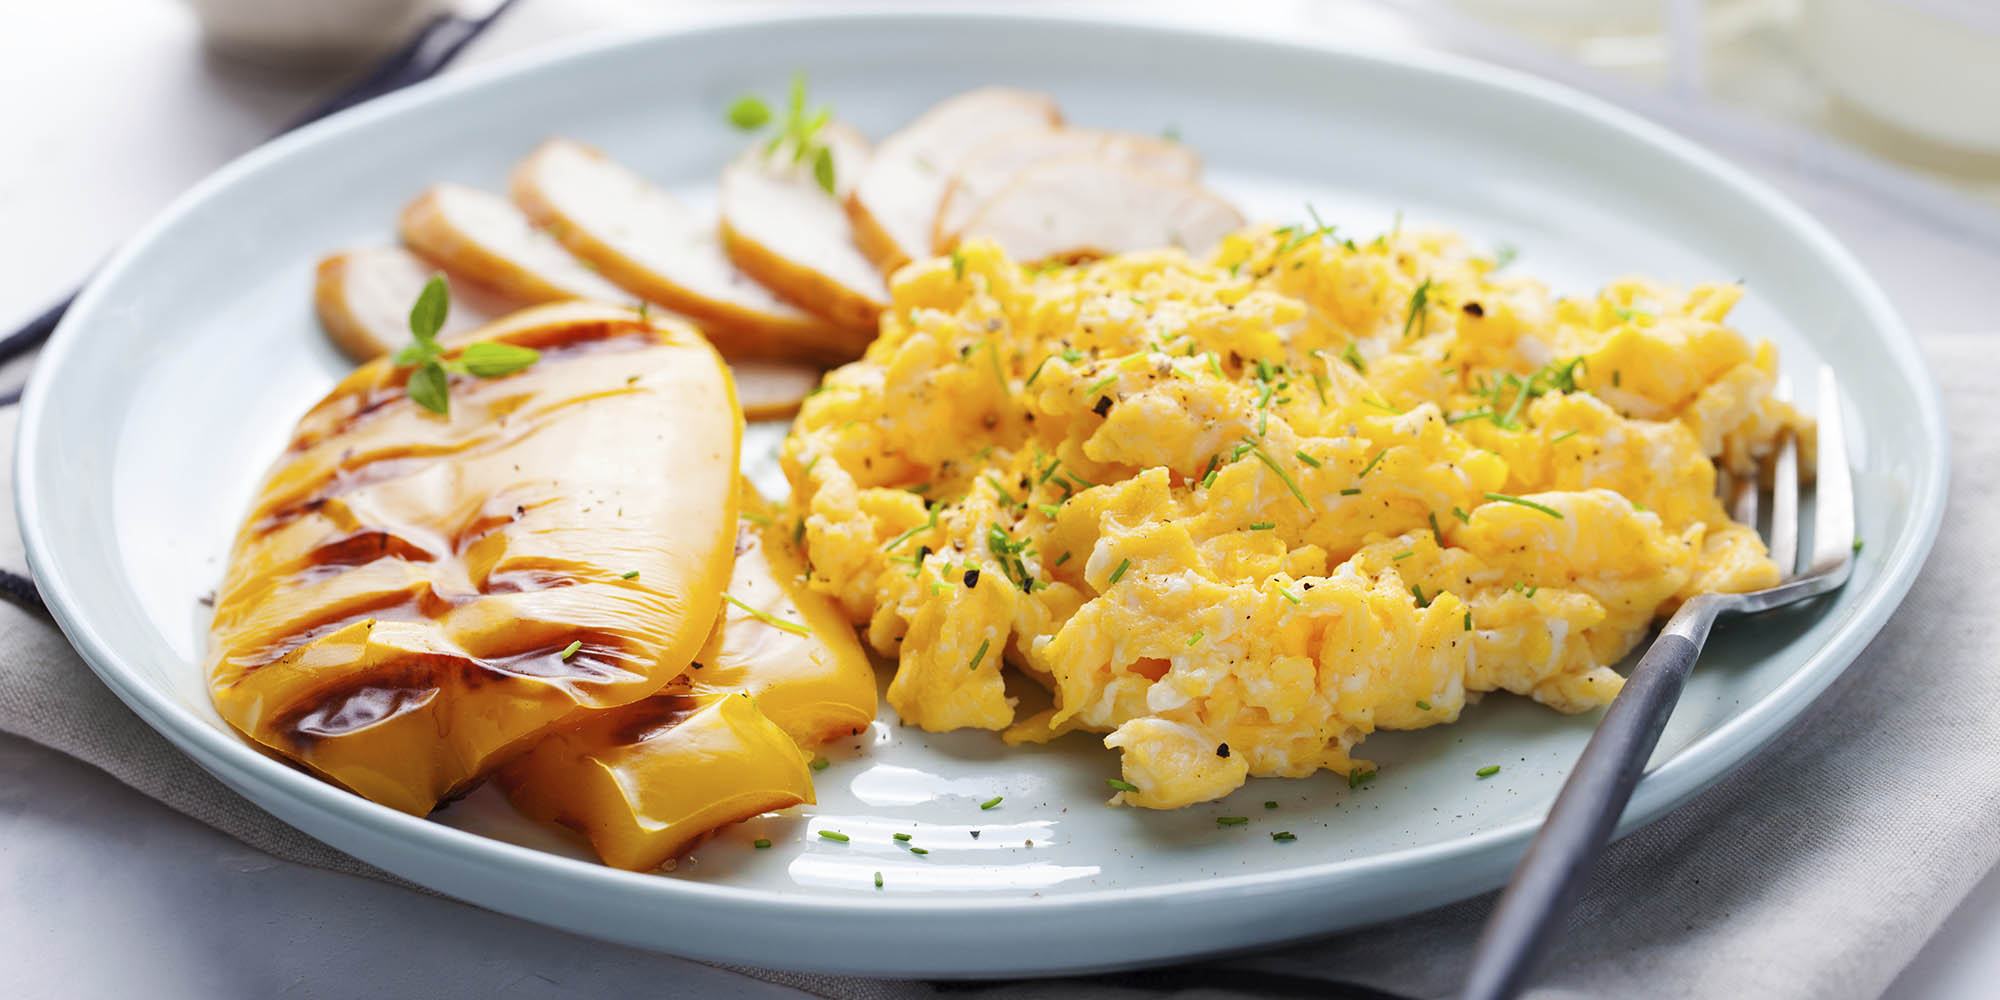 How to Make Scrambled Eggs